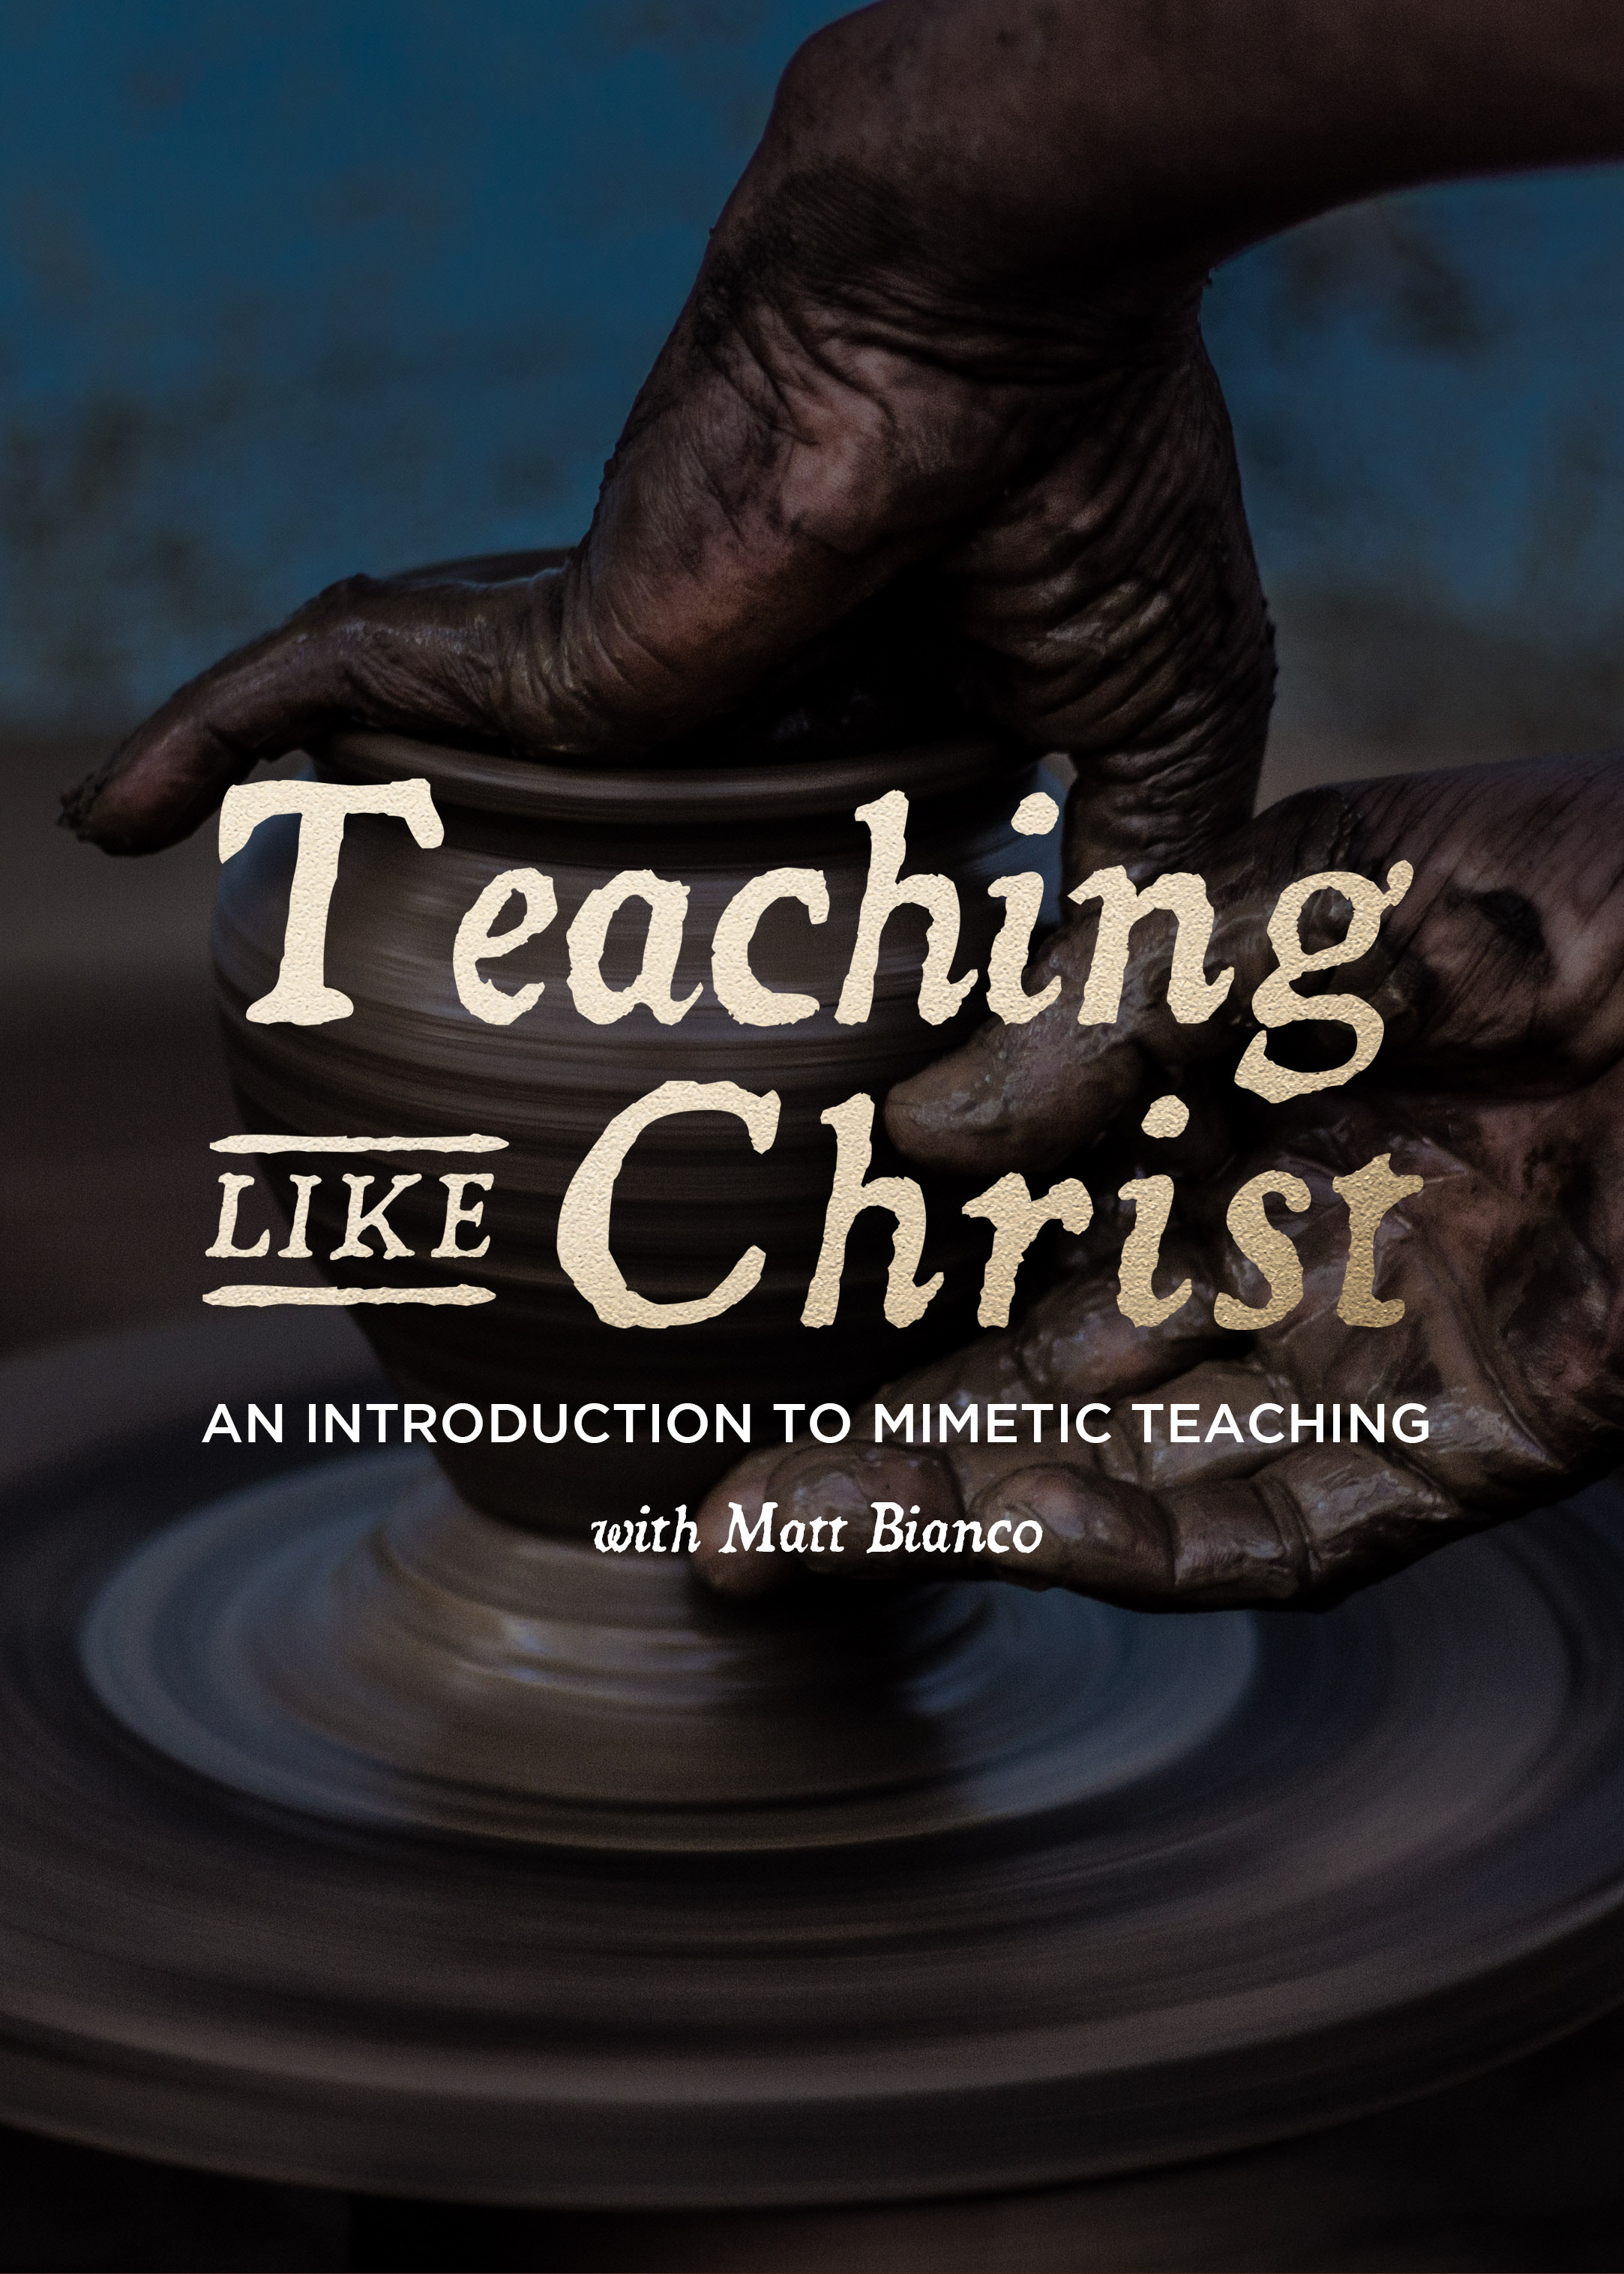 Teaching Like Christ: Mimetic Introduction - Webinar Recording